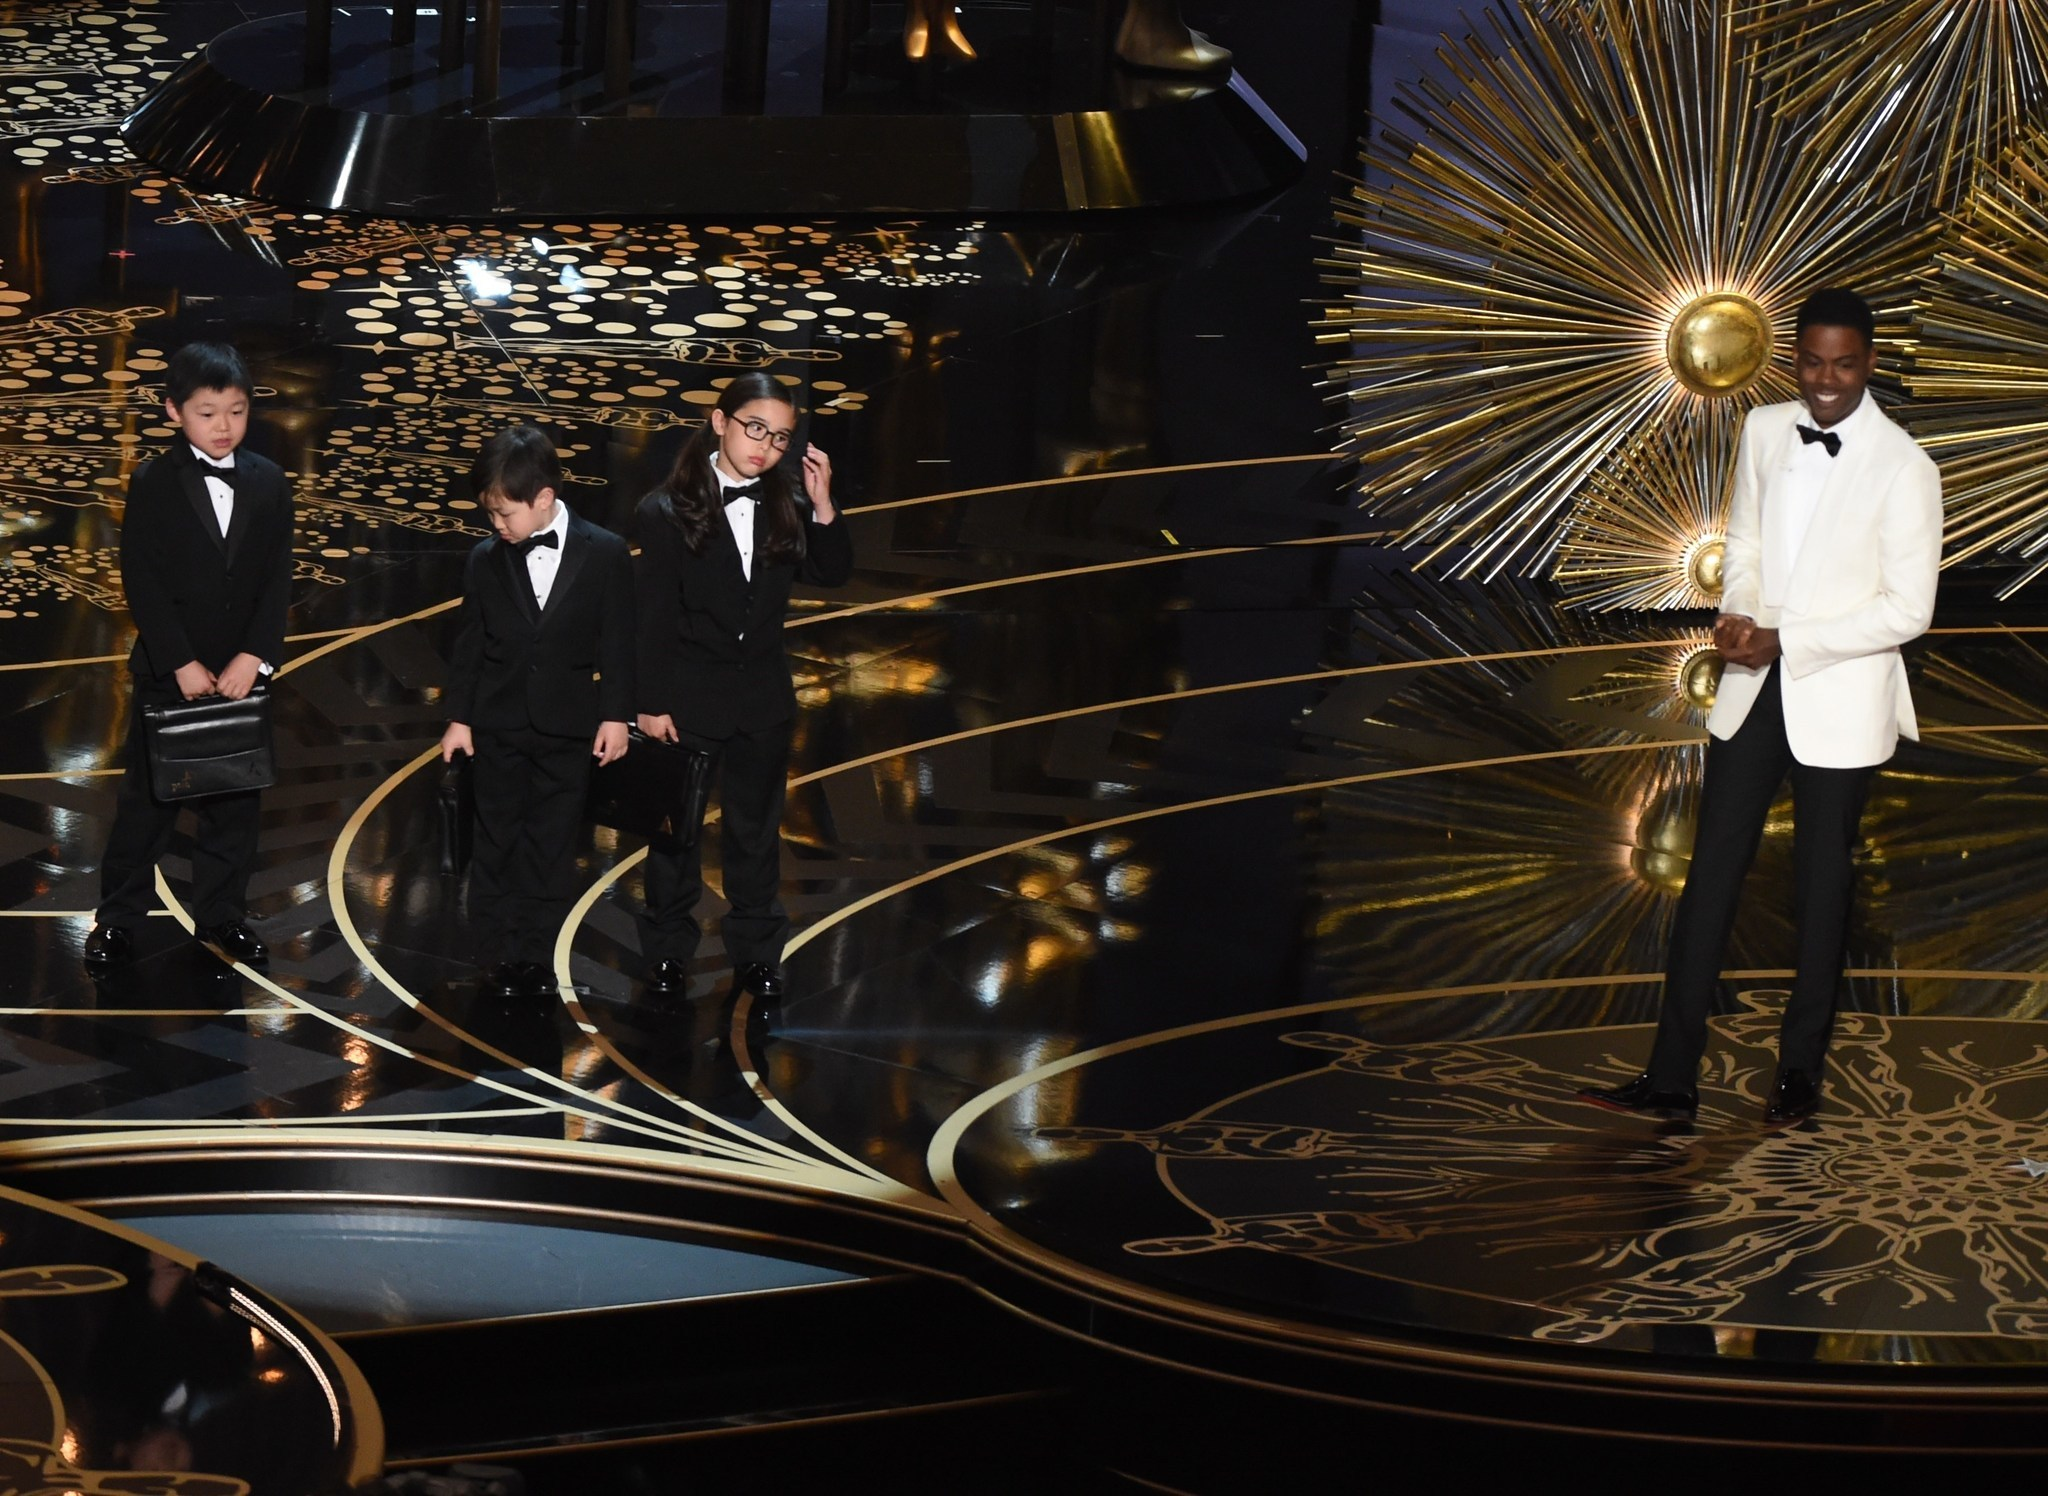 Big event red curtains with spotlight stock photo getty images - Oscars Host Chris Rock Introduces Children Representing Pricewaterhousecoopers Accountants At The 88th Oscars On Sunday